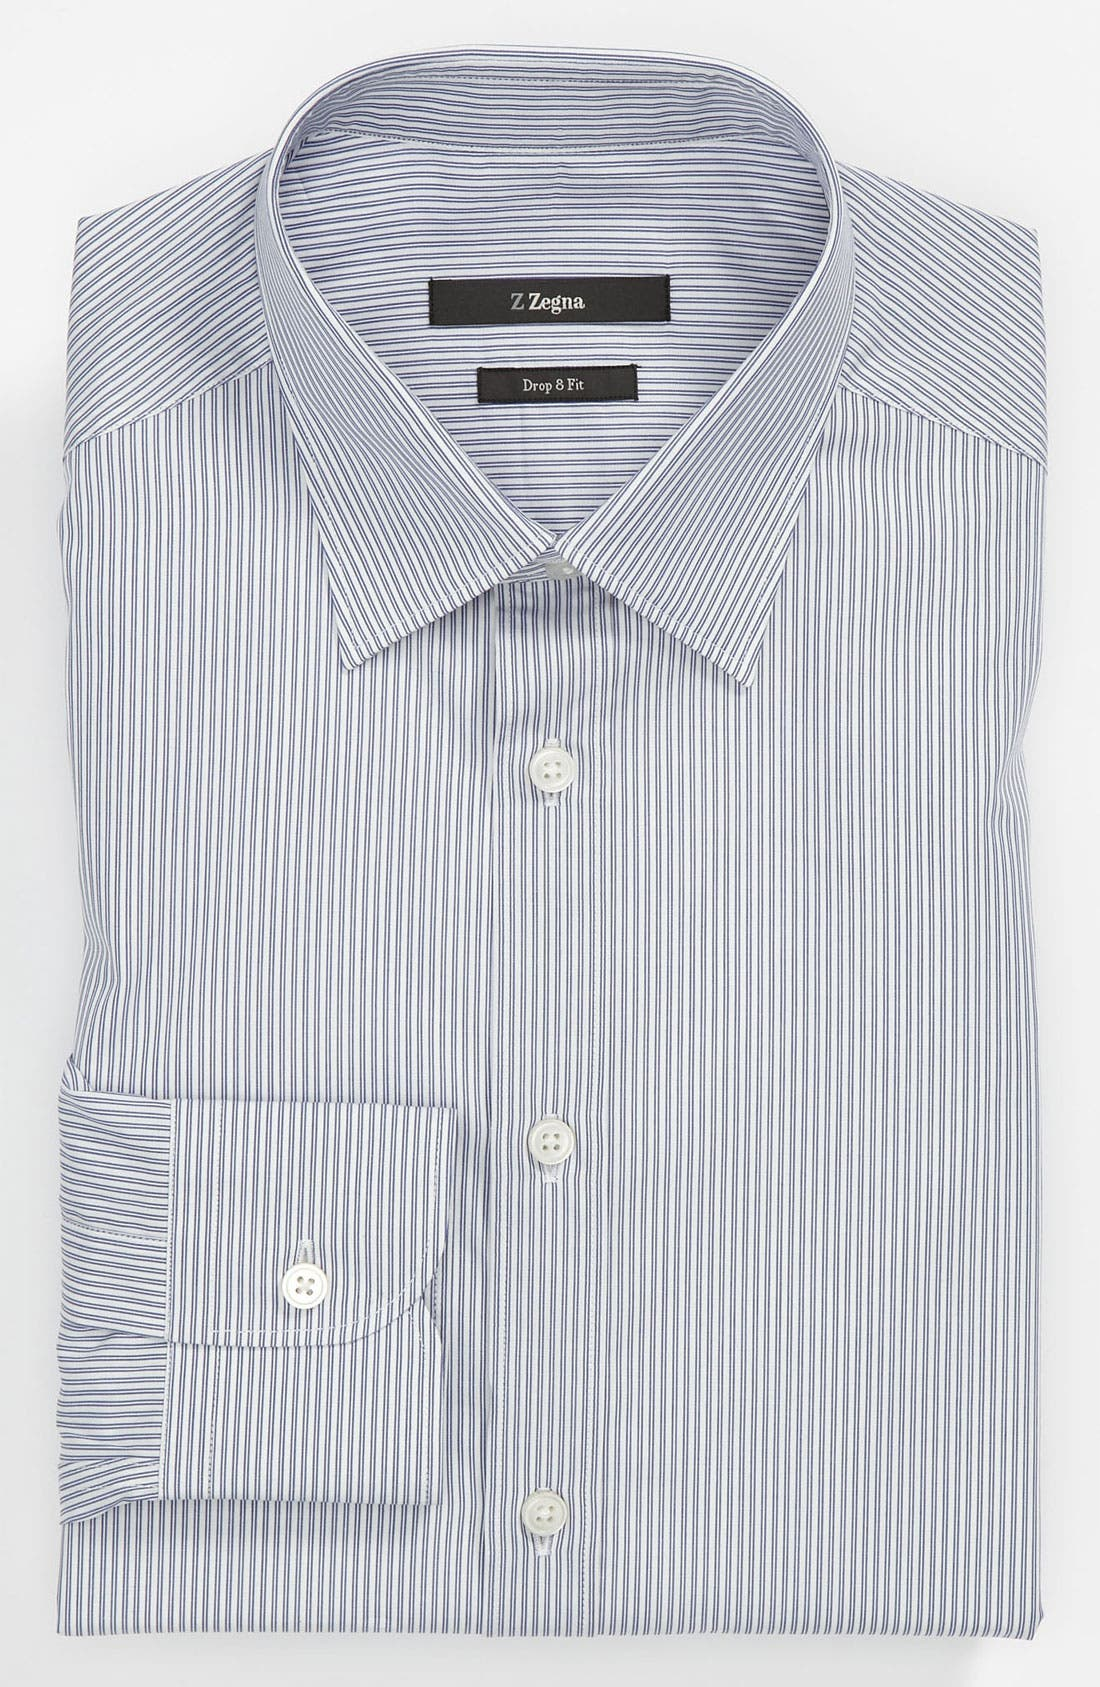 Main Image - Z Zegna Drop 8 Fit Dress Shirt